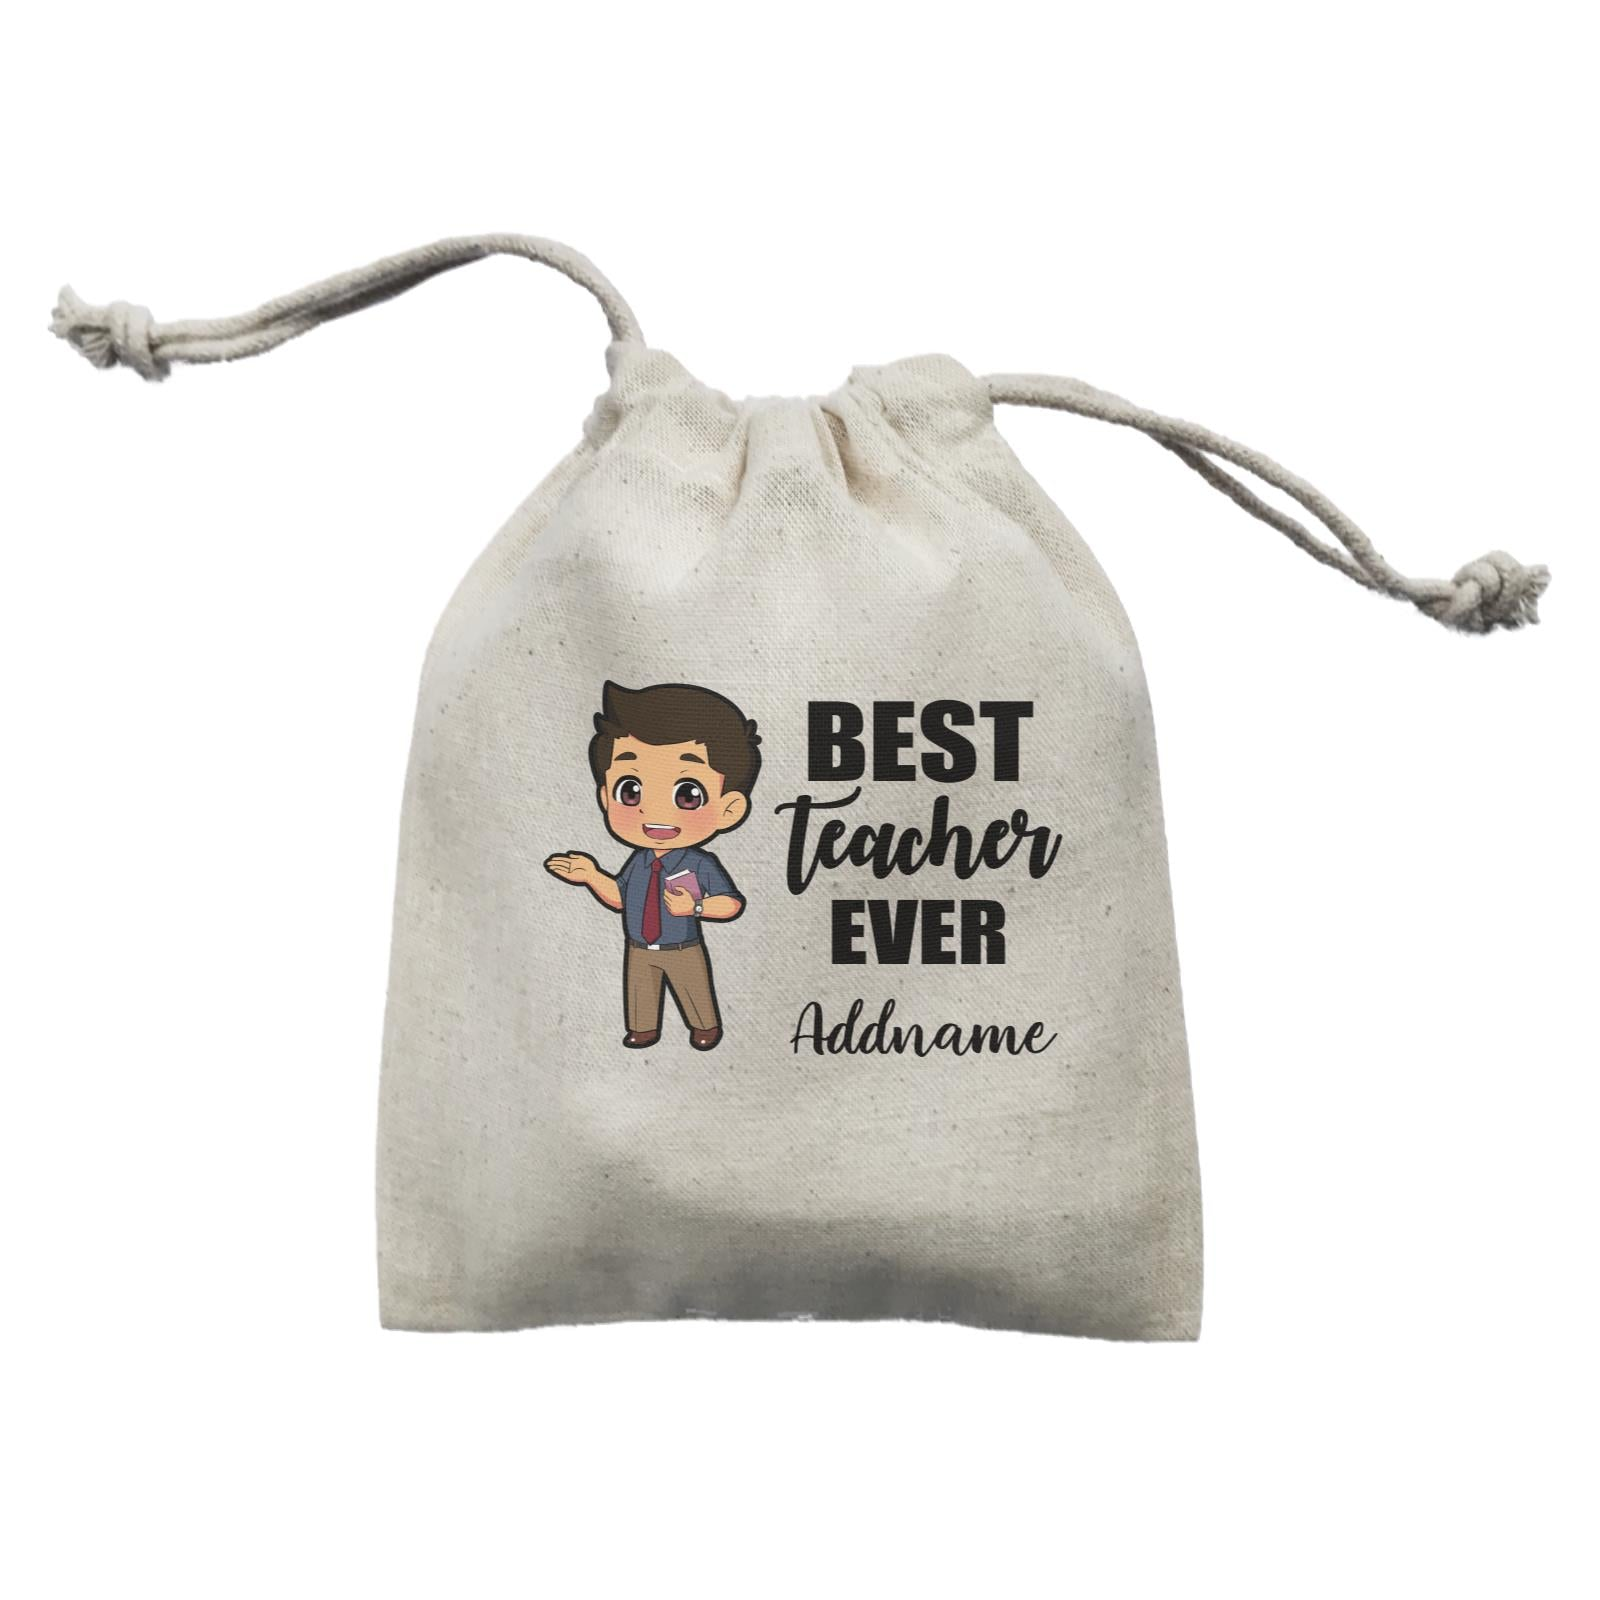 Chibi Teachers Malay Man Best Teacher Ever Addname Mini Accessories Mini Pouch